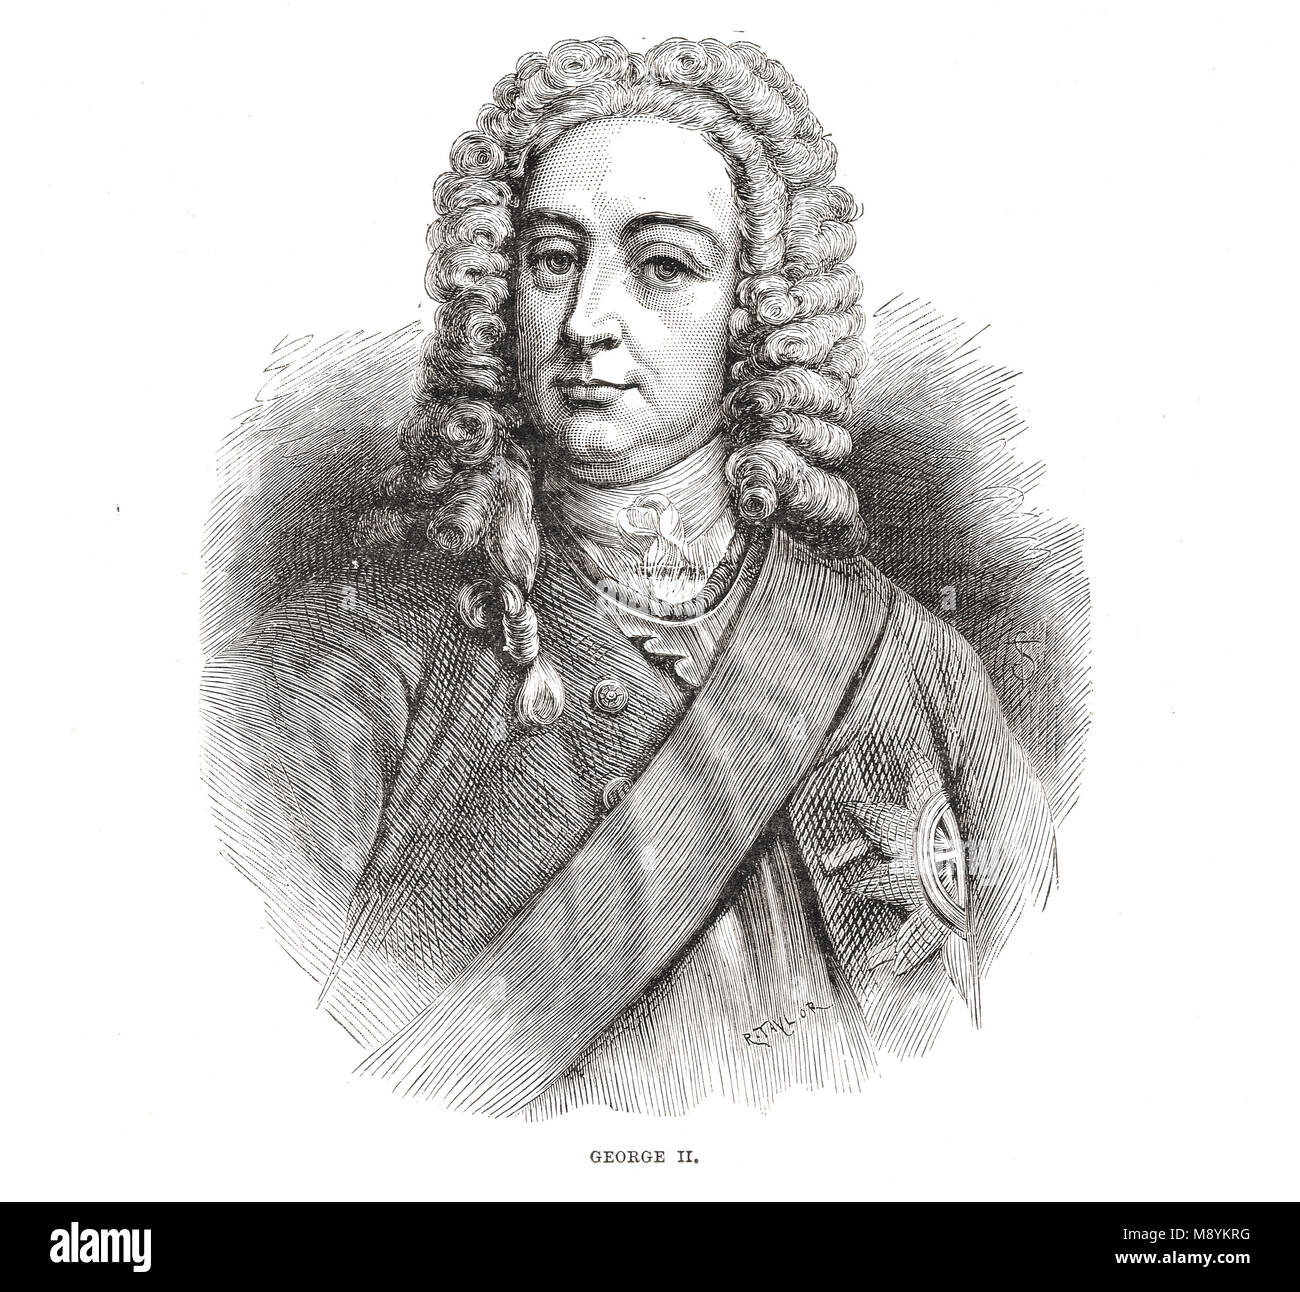 King George II of of the United Kingdom, Great Britain and Ireland, reigned 1727-1760 - Stock Image